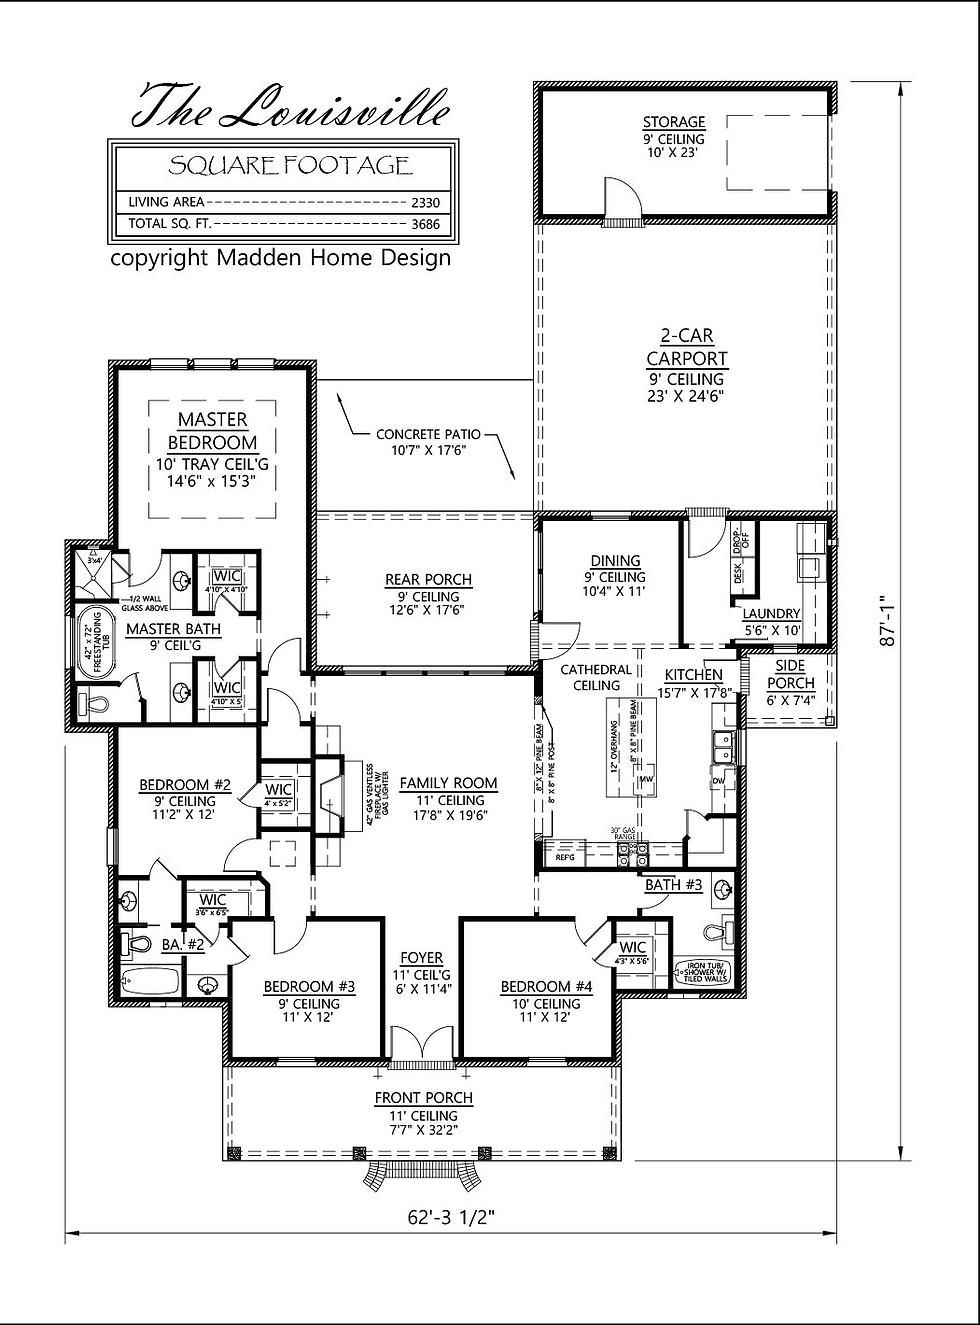 Madden Home Design - The Louisville Acadian style, 4 bedroom, 3 bath ...